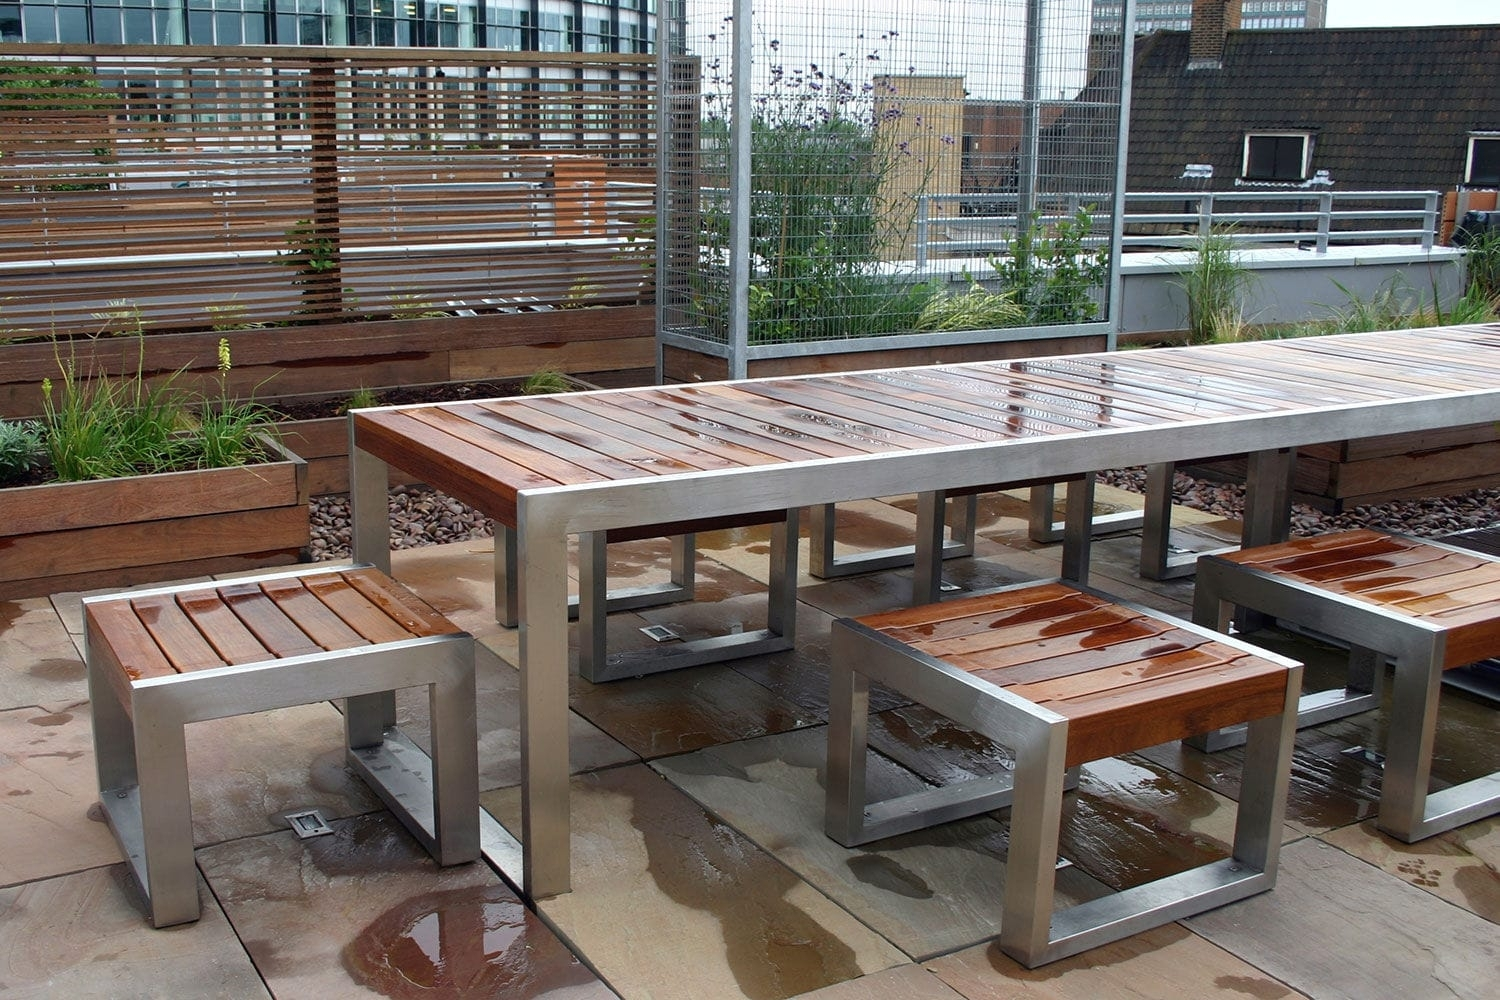 Image of: Contemporary Stool Wooden Stainless Steel For Public Areas For Outdoor Stainless Steel Furniture Great Outdoor Stainless Steel Furniture